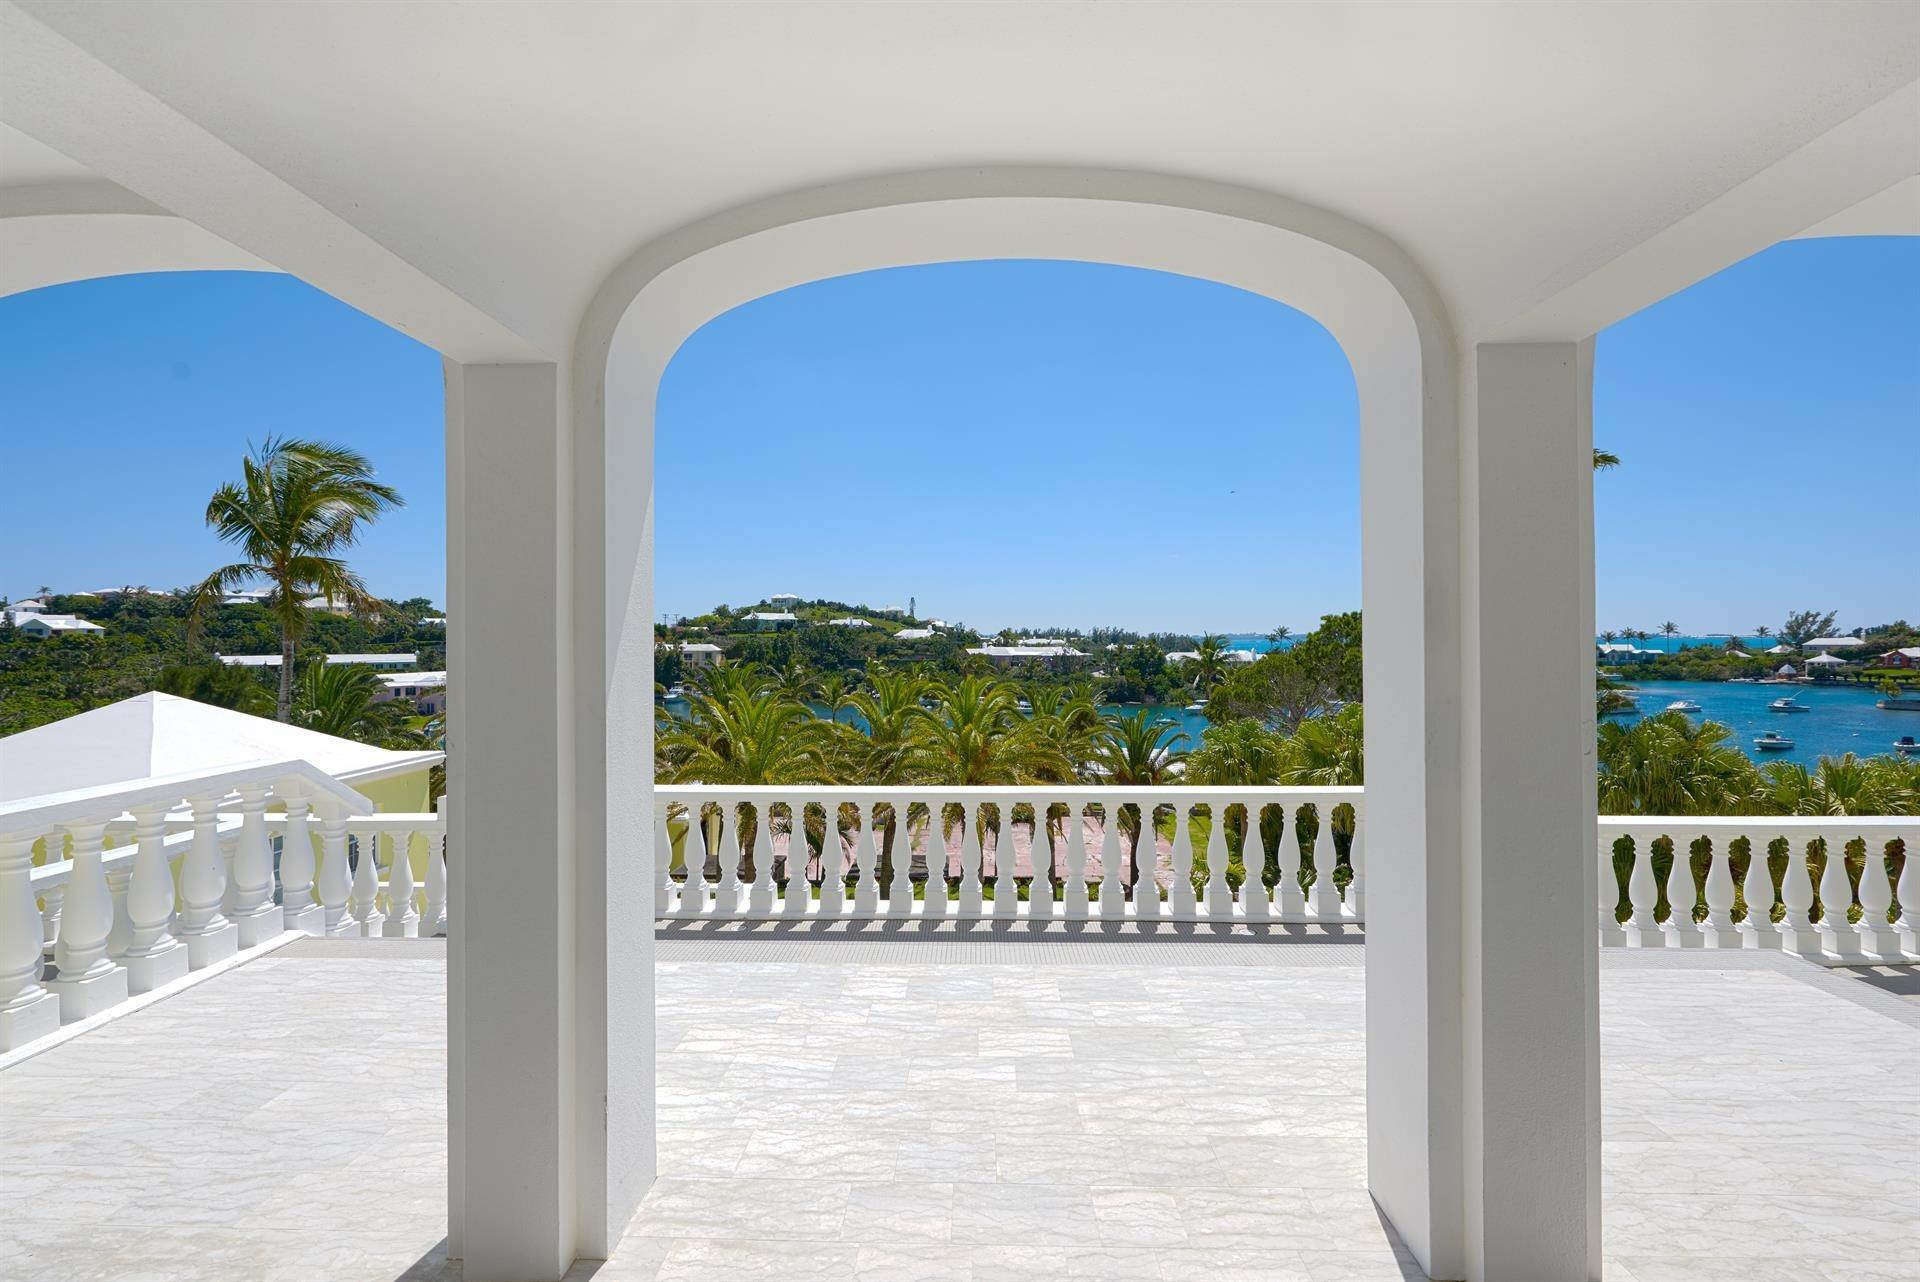 8. Waterfront Property for Sale at Palomera In Fairylands Palomera In Fairylands, 7 Mills Shares Road,Bermuda – Sinclair Realty